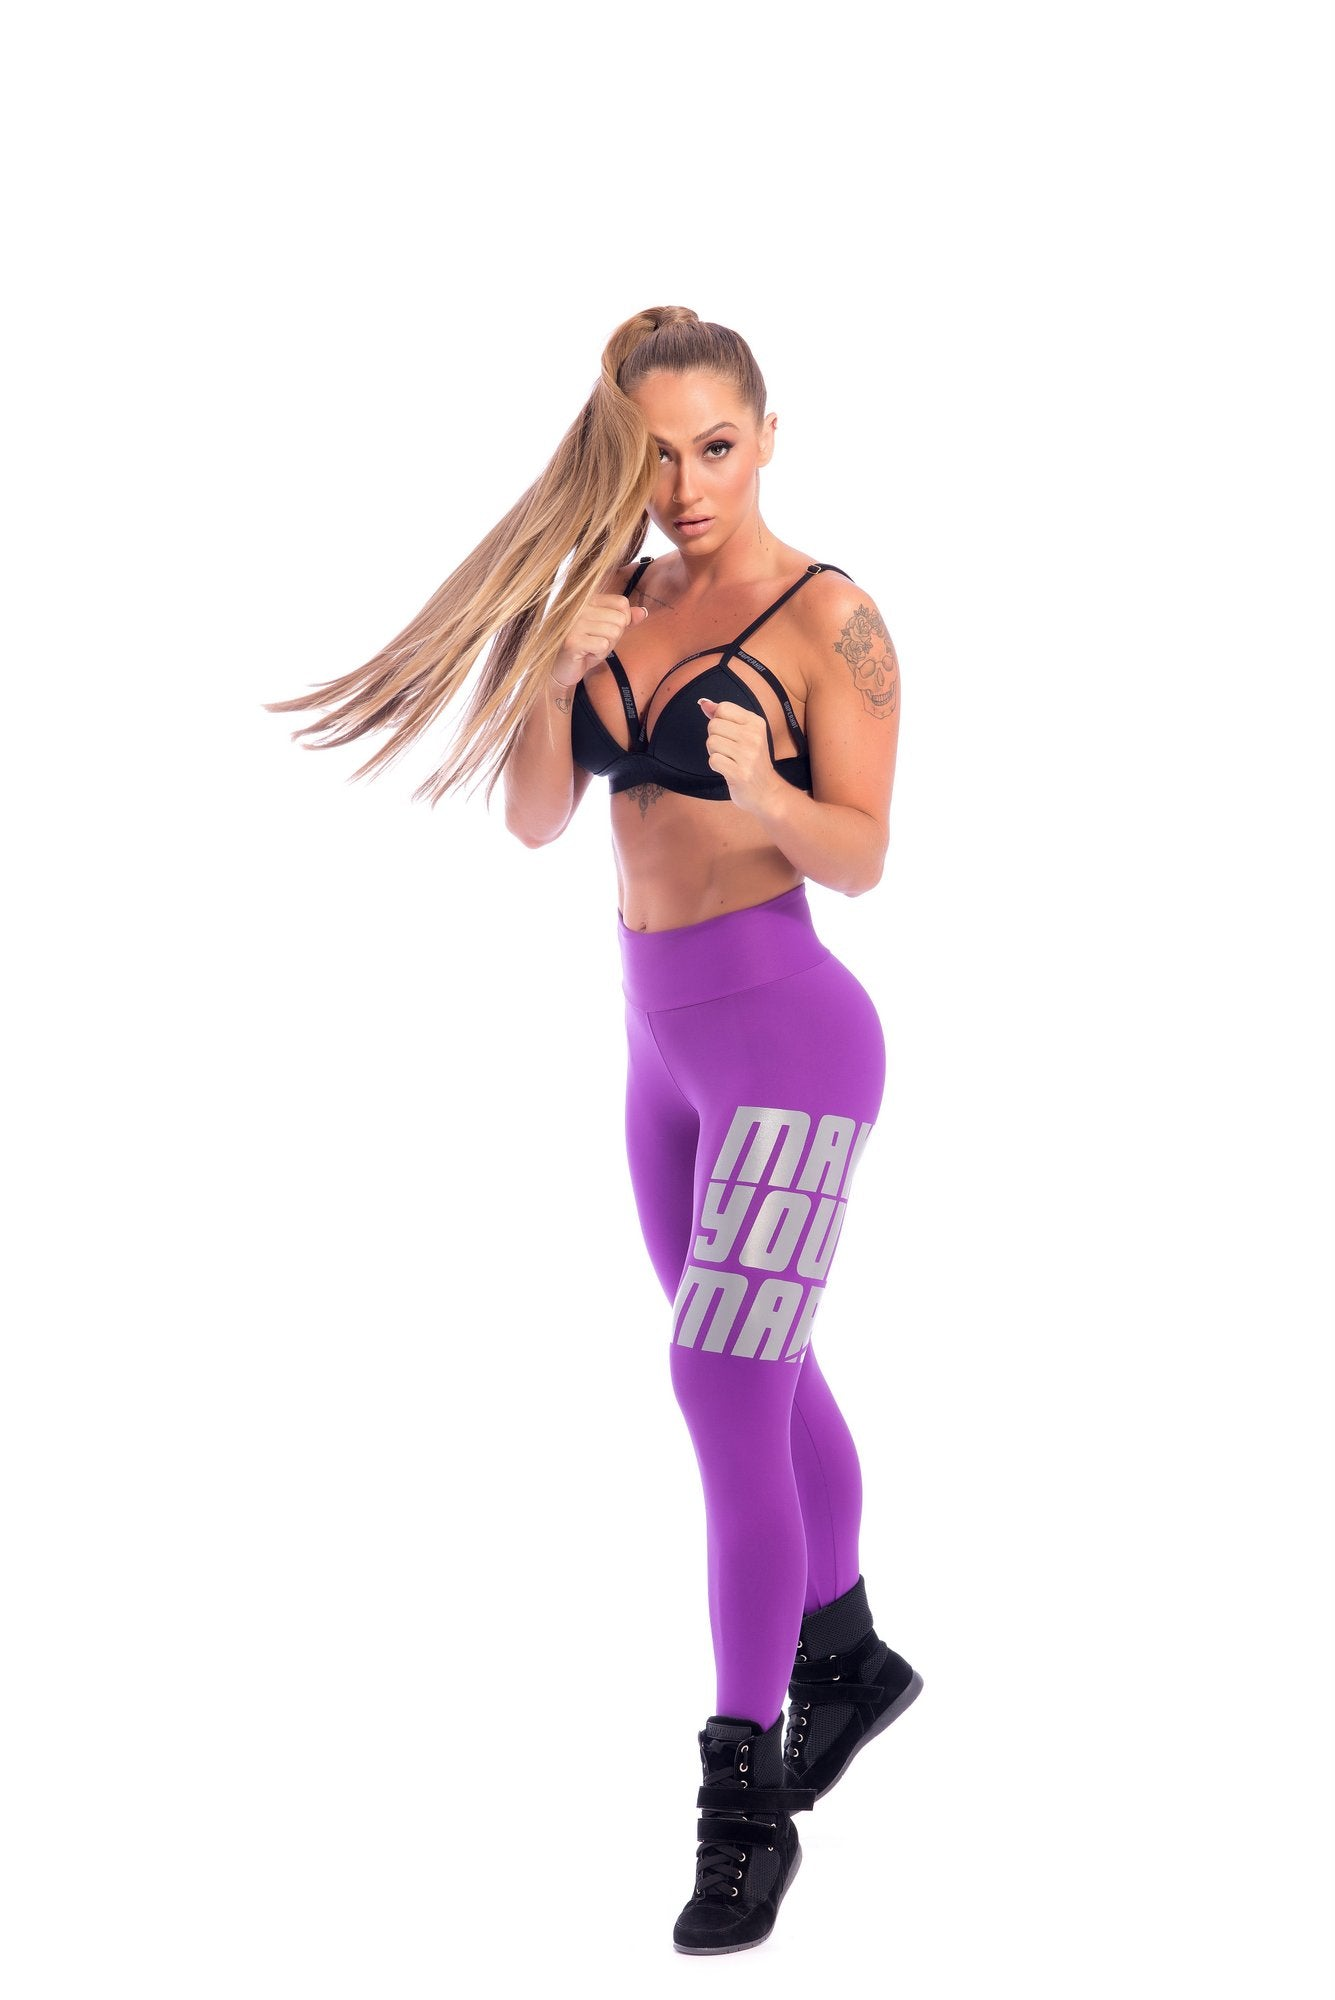 Make Your Mark Legging - Purple - SUPERHOT - FitZee